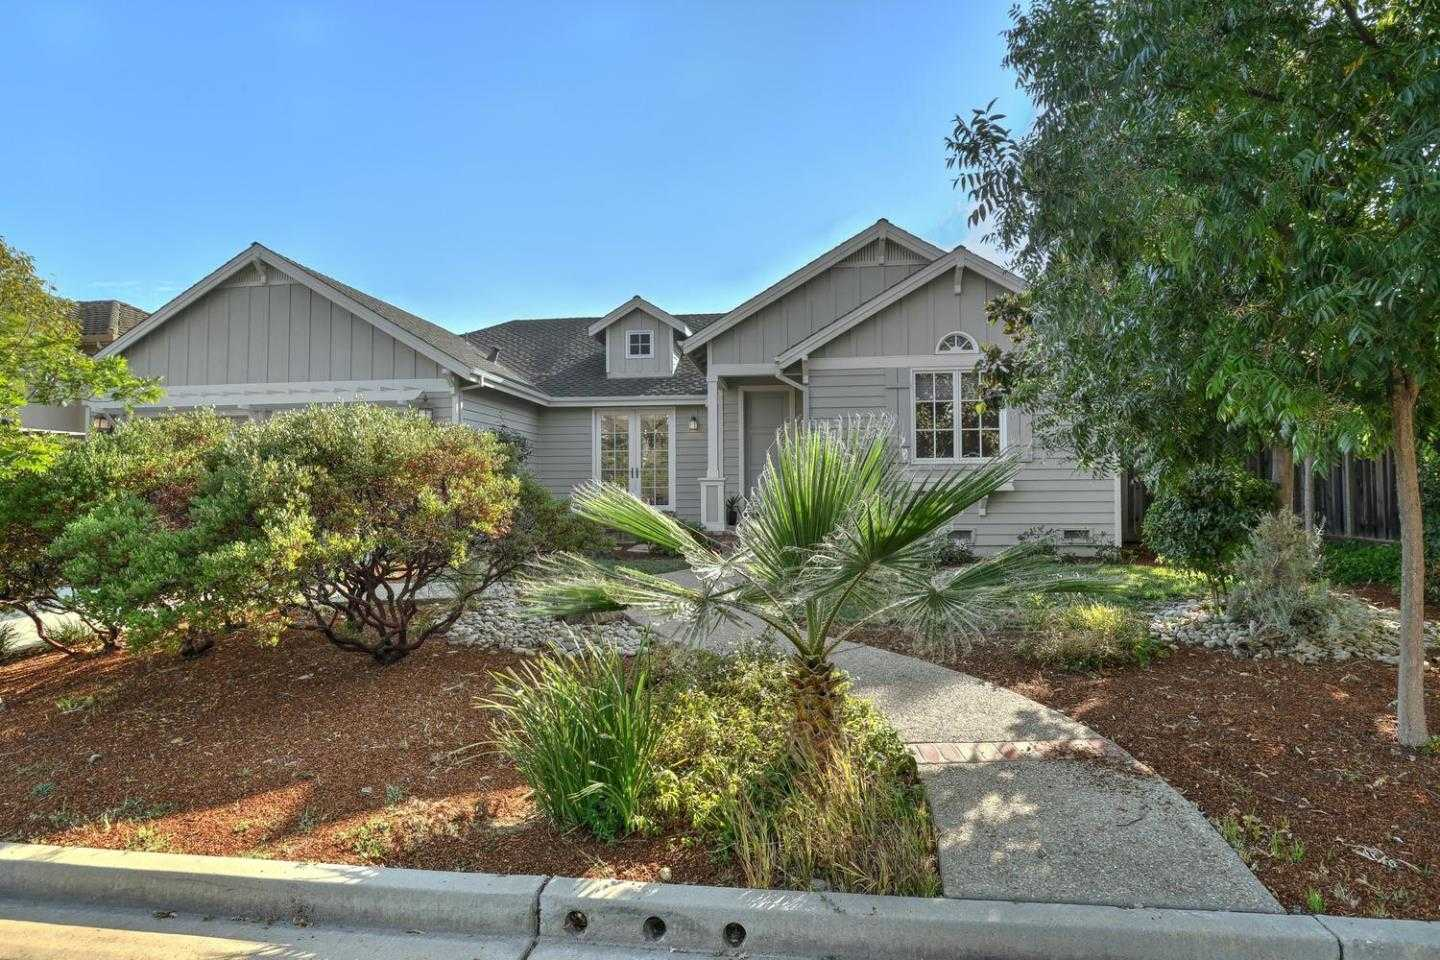 $2,745,000 - 4Br/3Ba -  for Sale in Cupertino